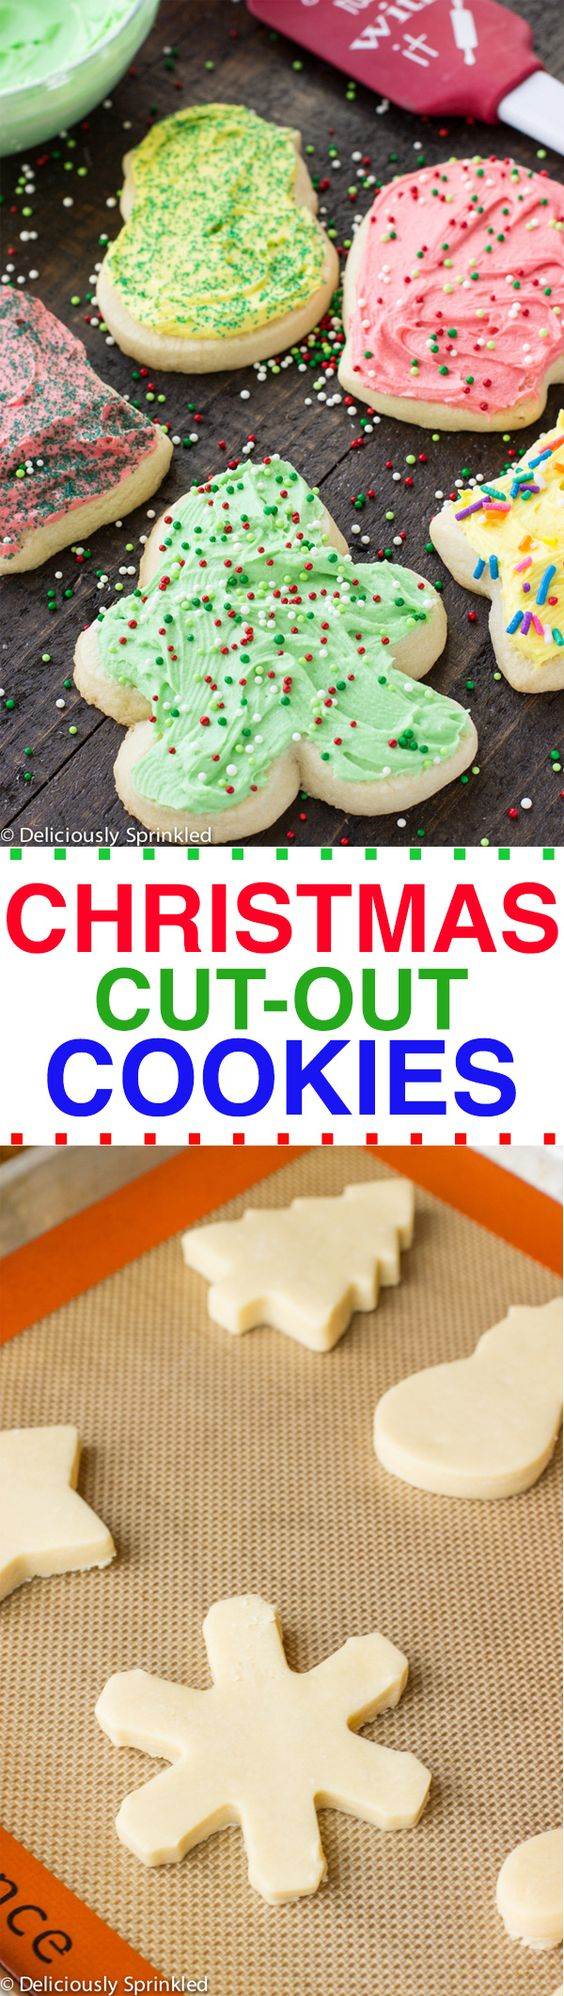 THE BEST CHRISTMAS CUT-OUT COOKIES RECIPE